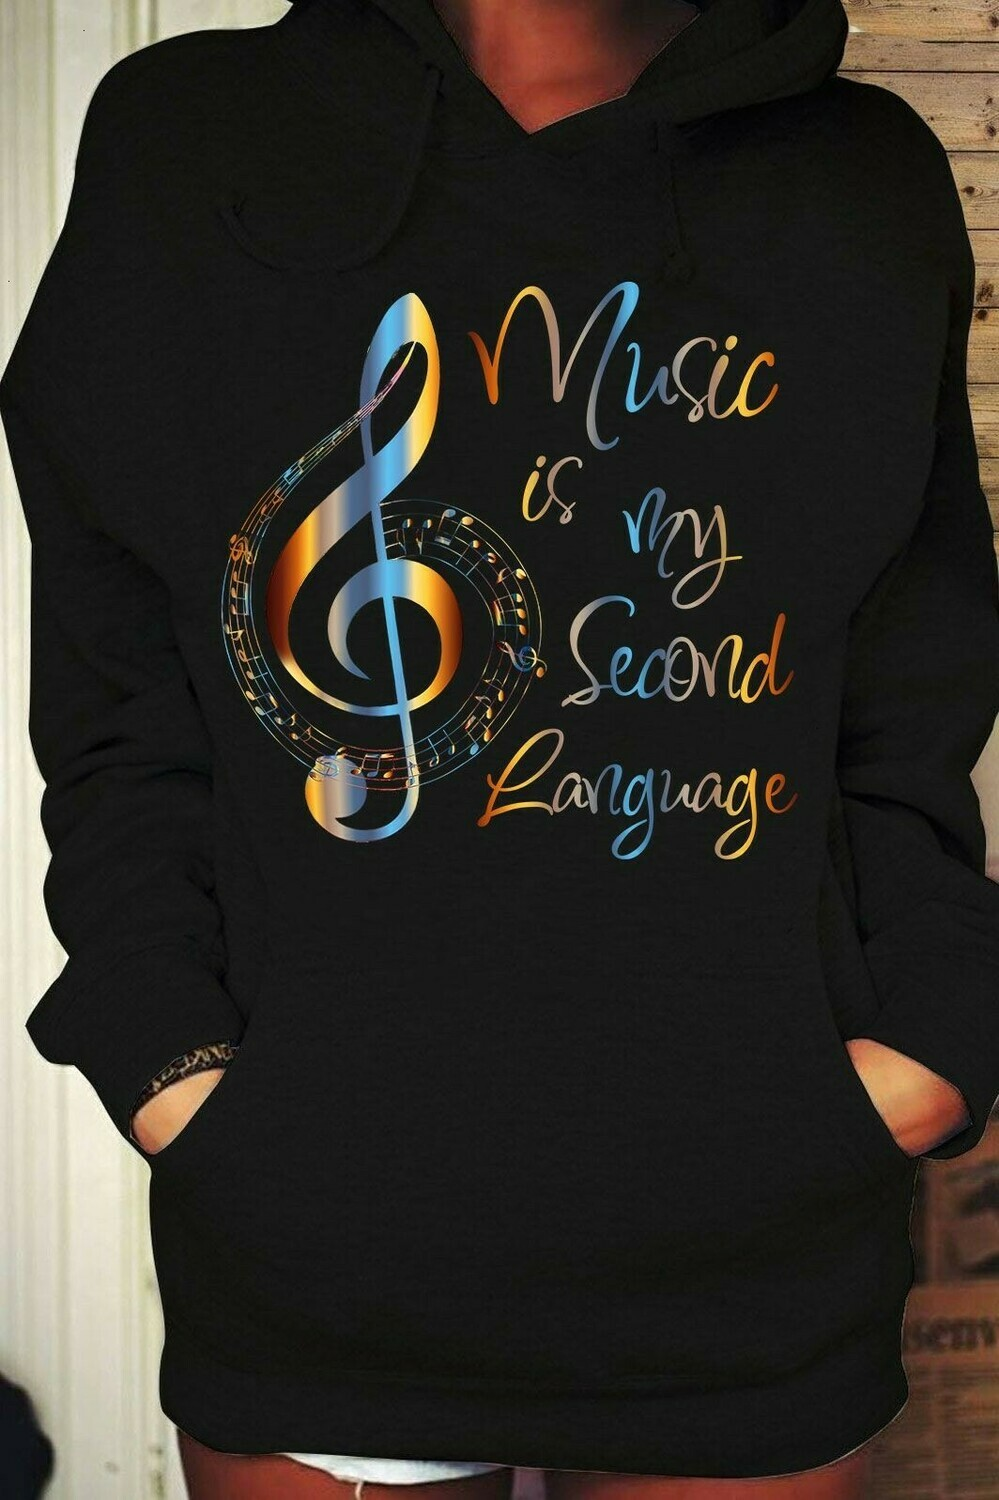 Music is my Second language Graphic T-shirt for men women Music Lover Musician Unisex T-Shirt Hoodie Sweatshirt Sweater Plus Size for Ladies Women Men Kids Youth Gifts Tee Jolly Family Gifts